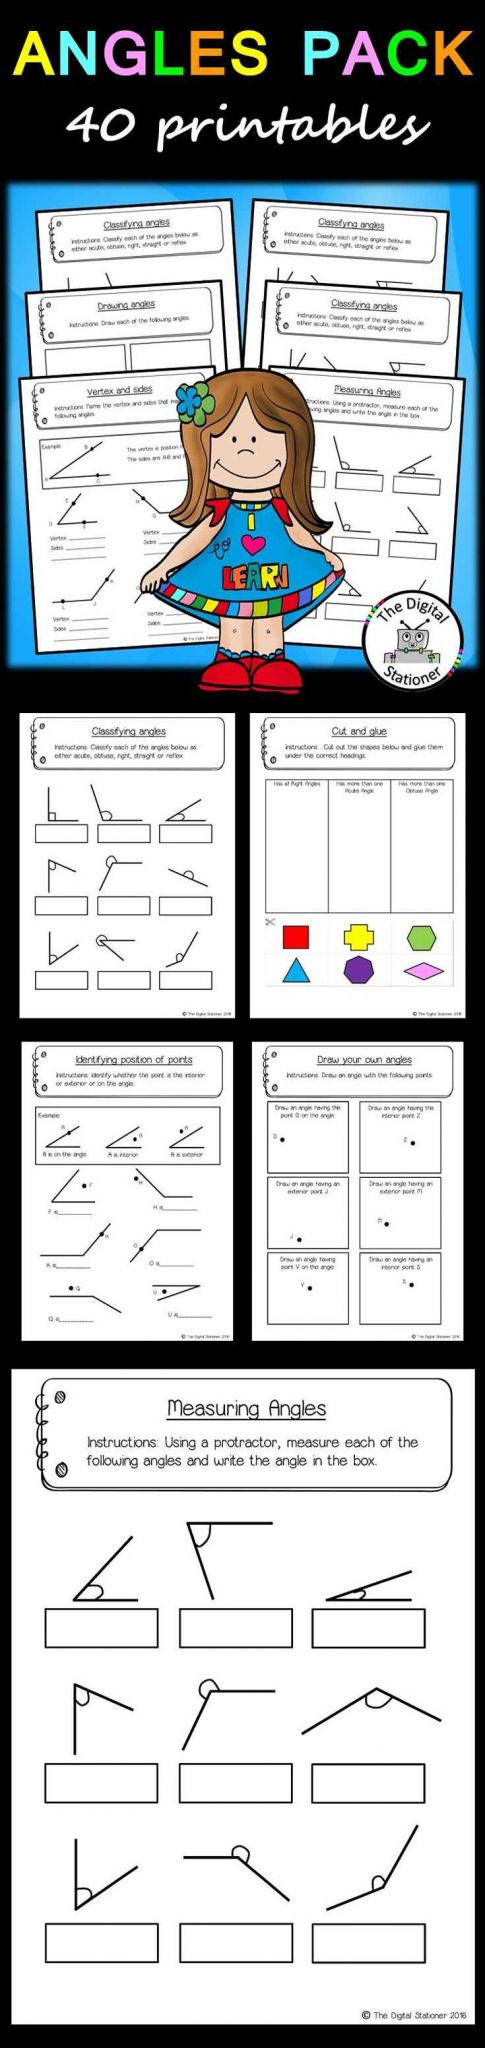 Power to A Power Worksheet together with the 55 Best My Tpt Maths Resources Images On Pinterest